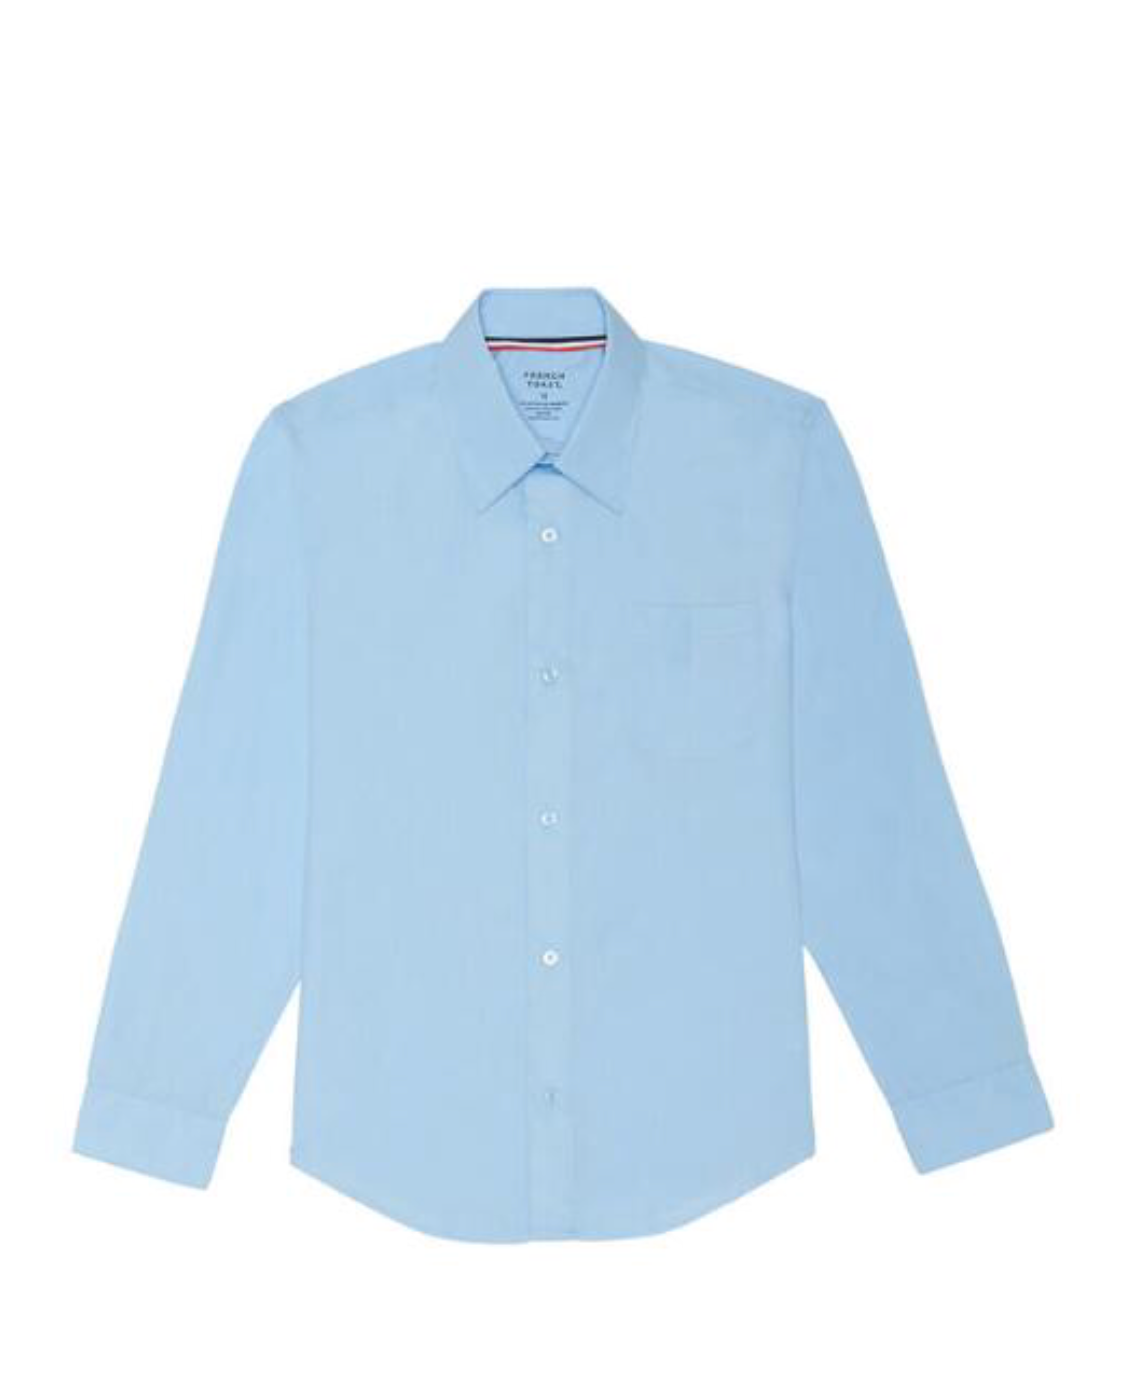 Boys Long Sleeve Dress Button Down Shirt BLUE/WHITE with School Monogram(For boys in all grades)